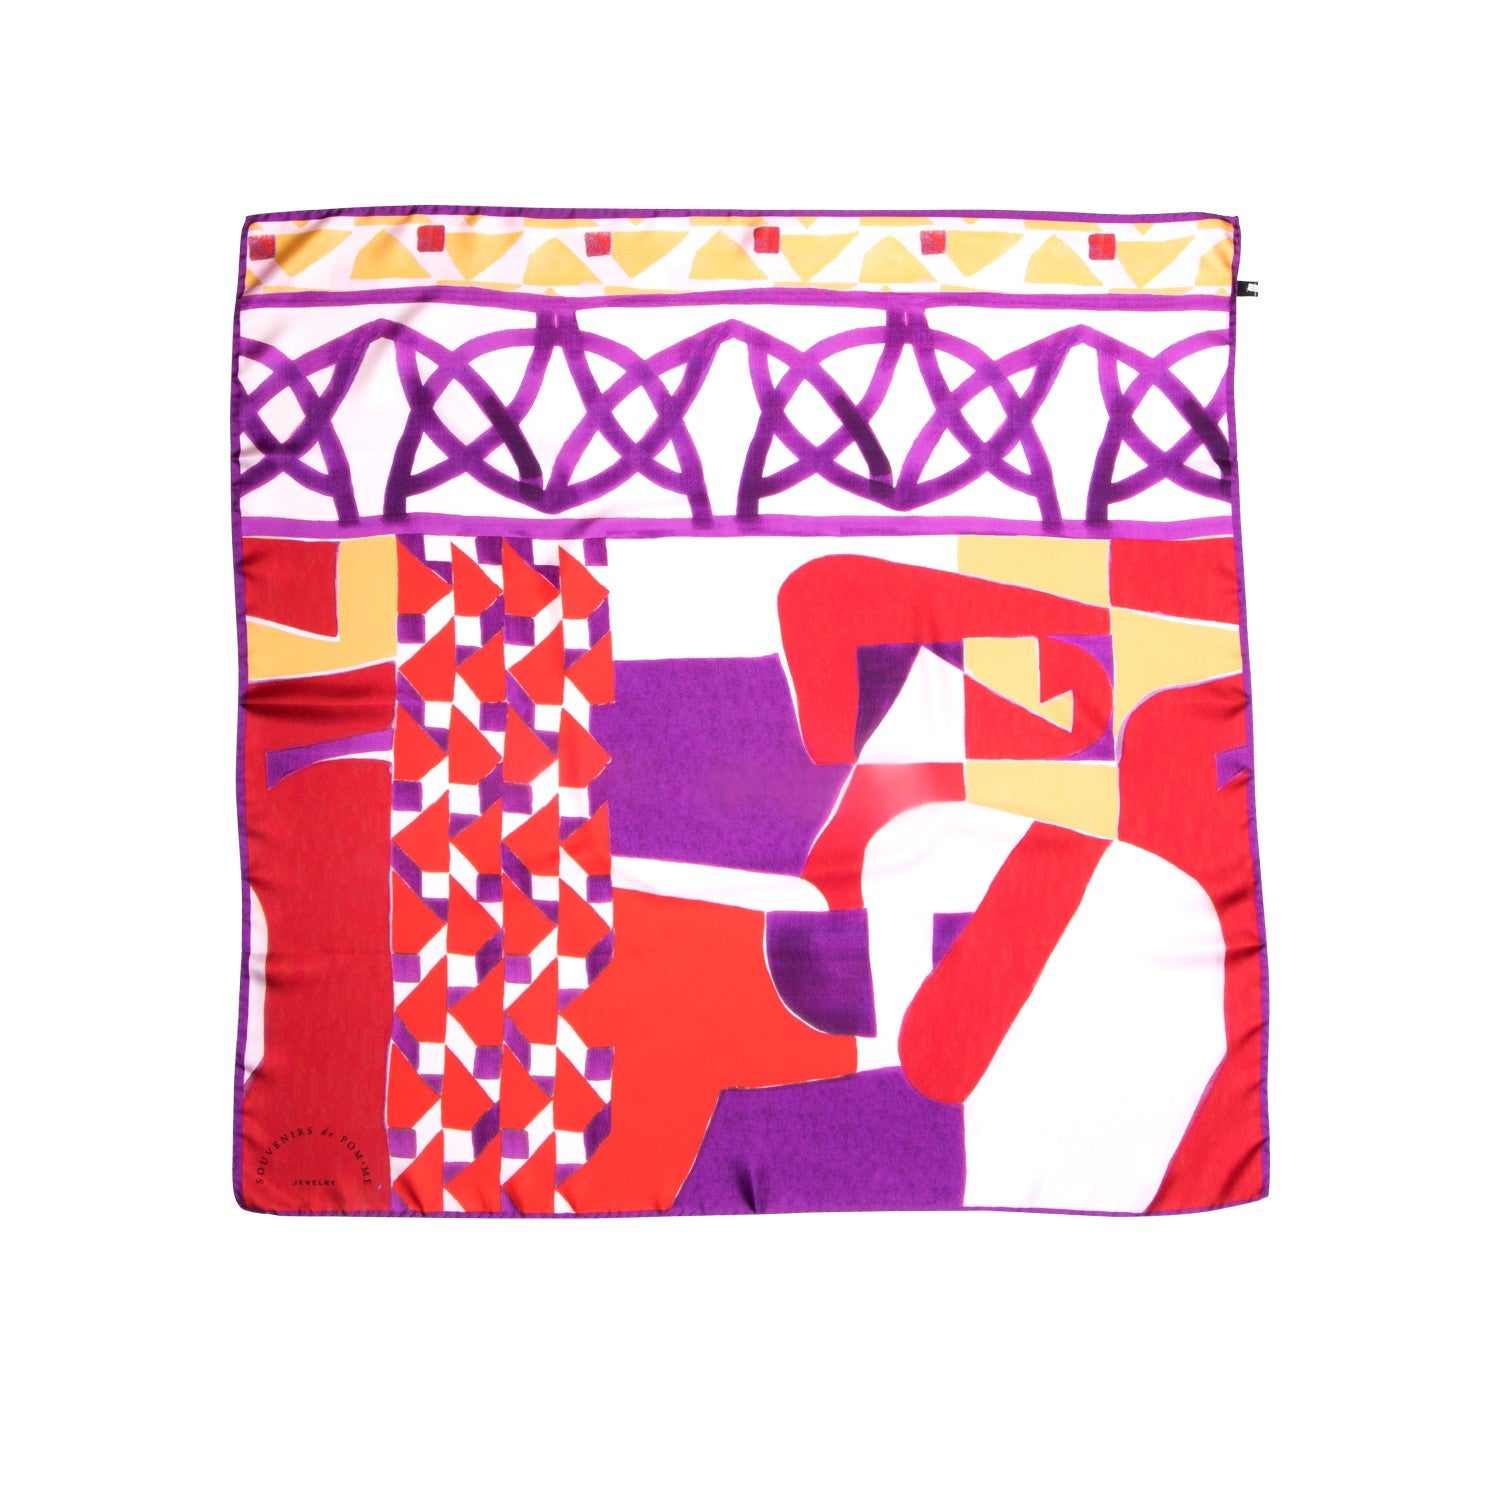 Twill tile purple-red foulard